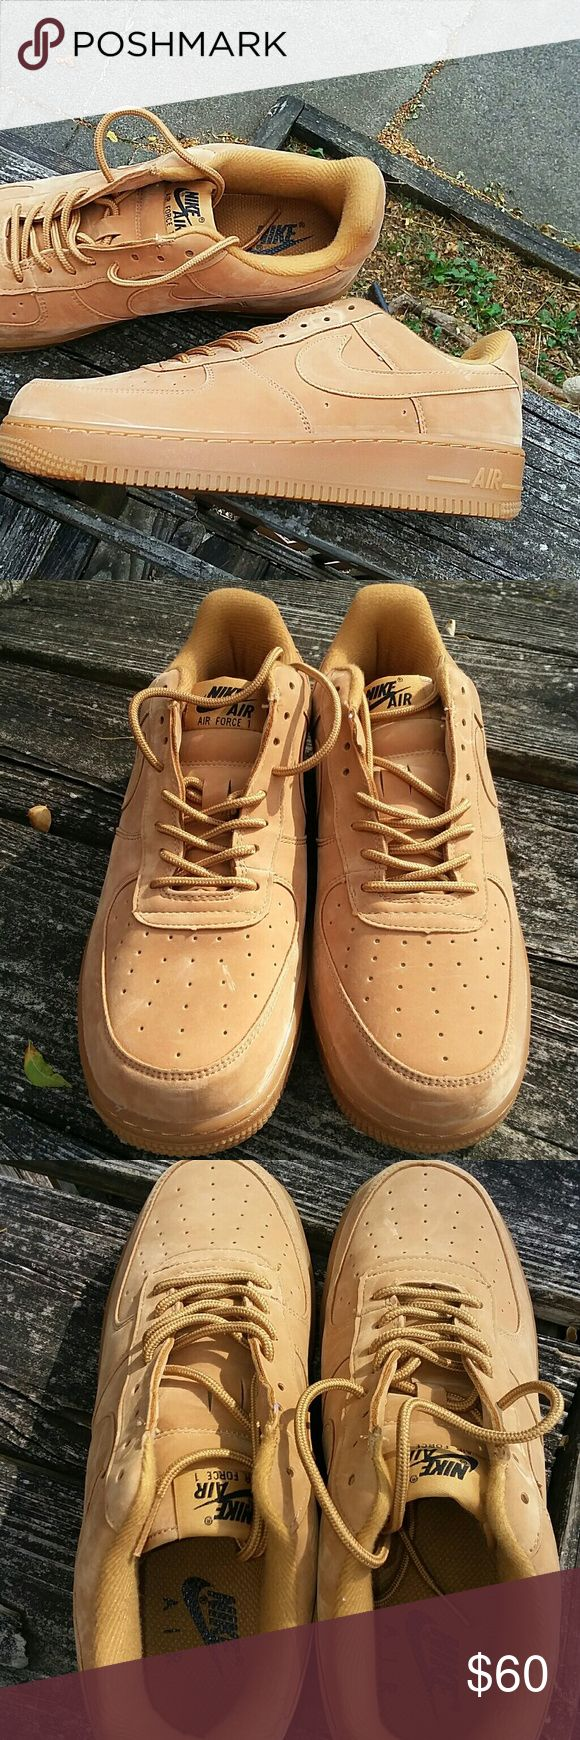 Nike Air Force 1 Wheat Flax Rare as 7.5 Here is a deadstock brand new pair of Nike Air force one Wheat flax in a size 7.5. These shoes are brand new deadstock never worn or tried on and are sold out in stores. Only flaw is the og box has been misplaced but still a great price considering you'll be paying $100+ same condition if you can find em. Get em now for the low.  US 7.5 UK 6.5  Jordan  Nike Adidas Foamposite Iphone Samsung Galaxy True Religion Rock and Revival Ewing Bape BBC Ice Cream…